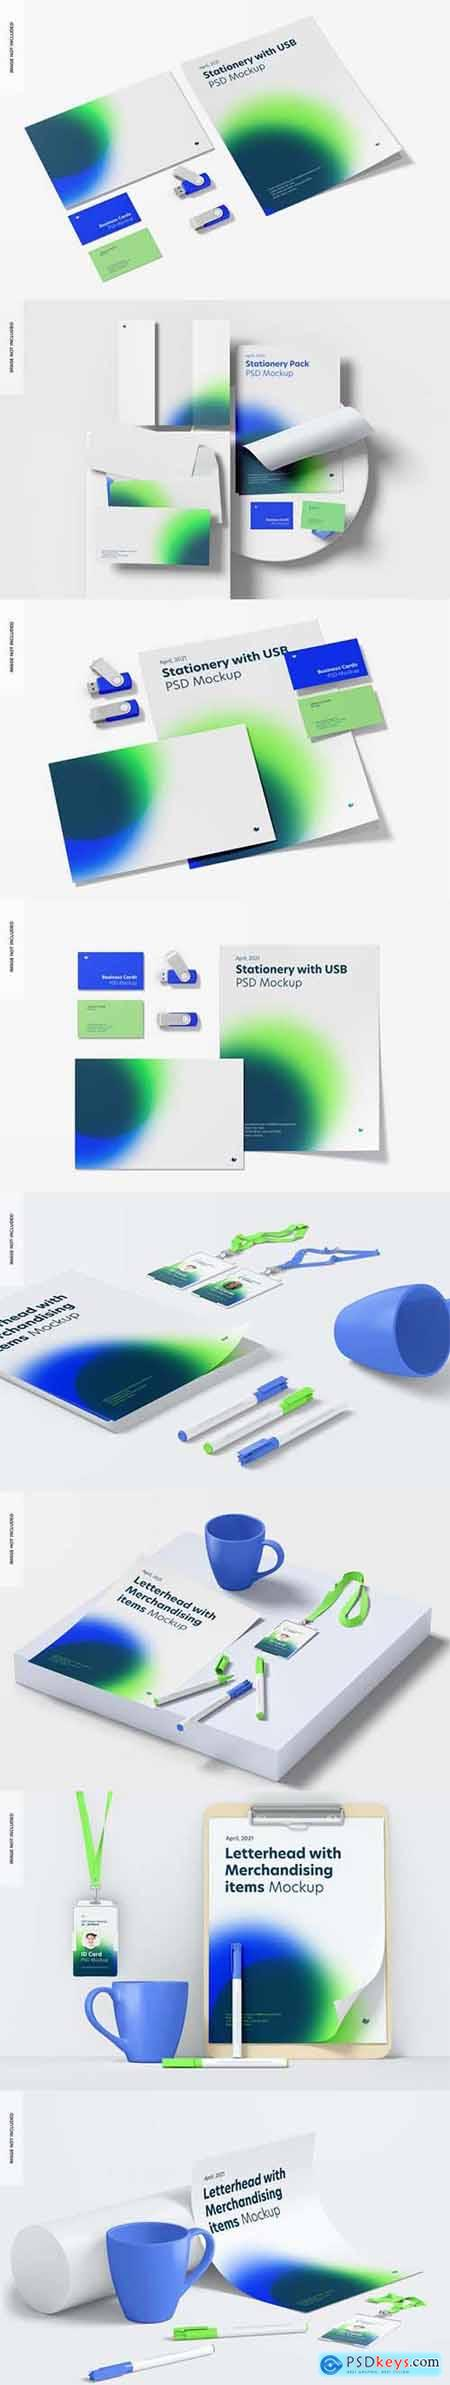 Stationery with usb flash drives mockup